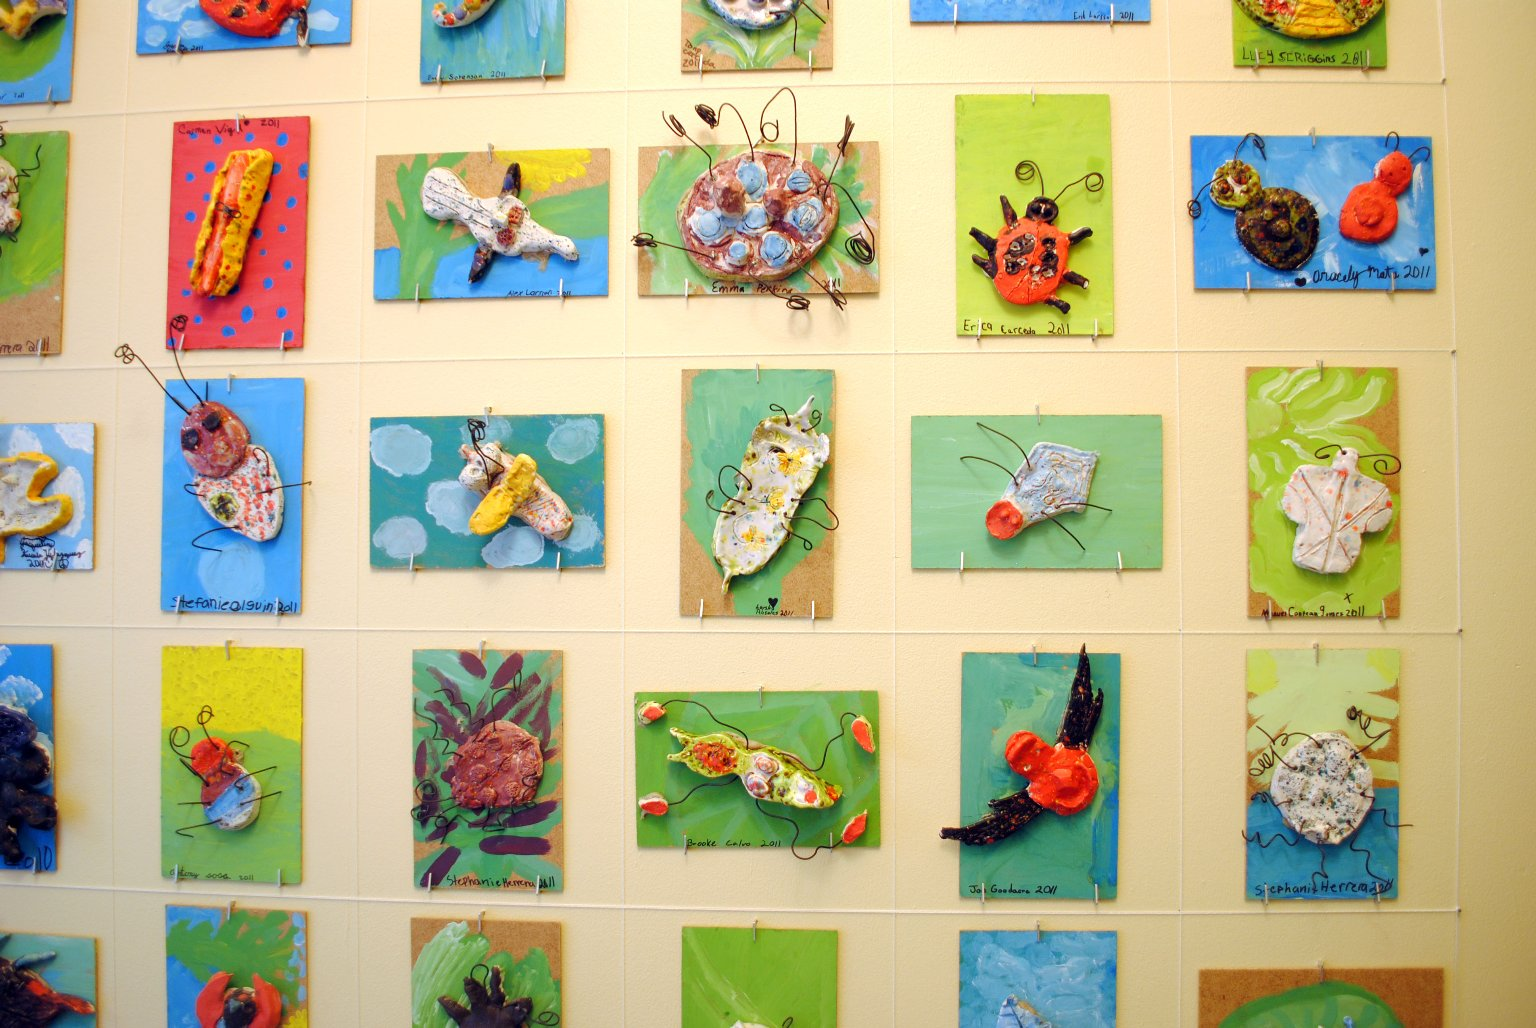 INSECTS INSPIRE